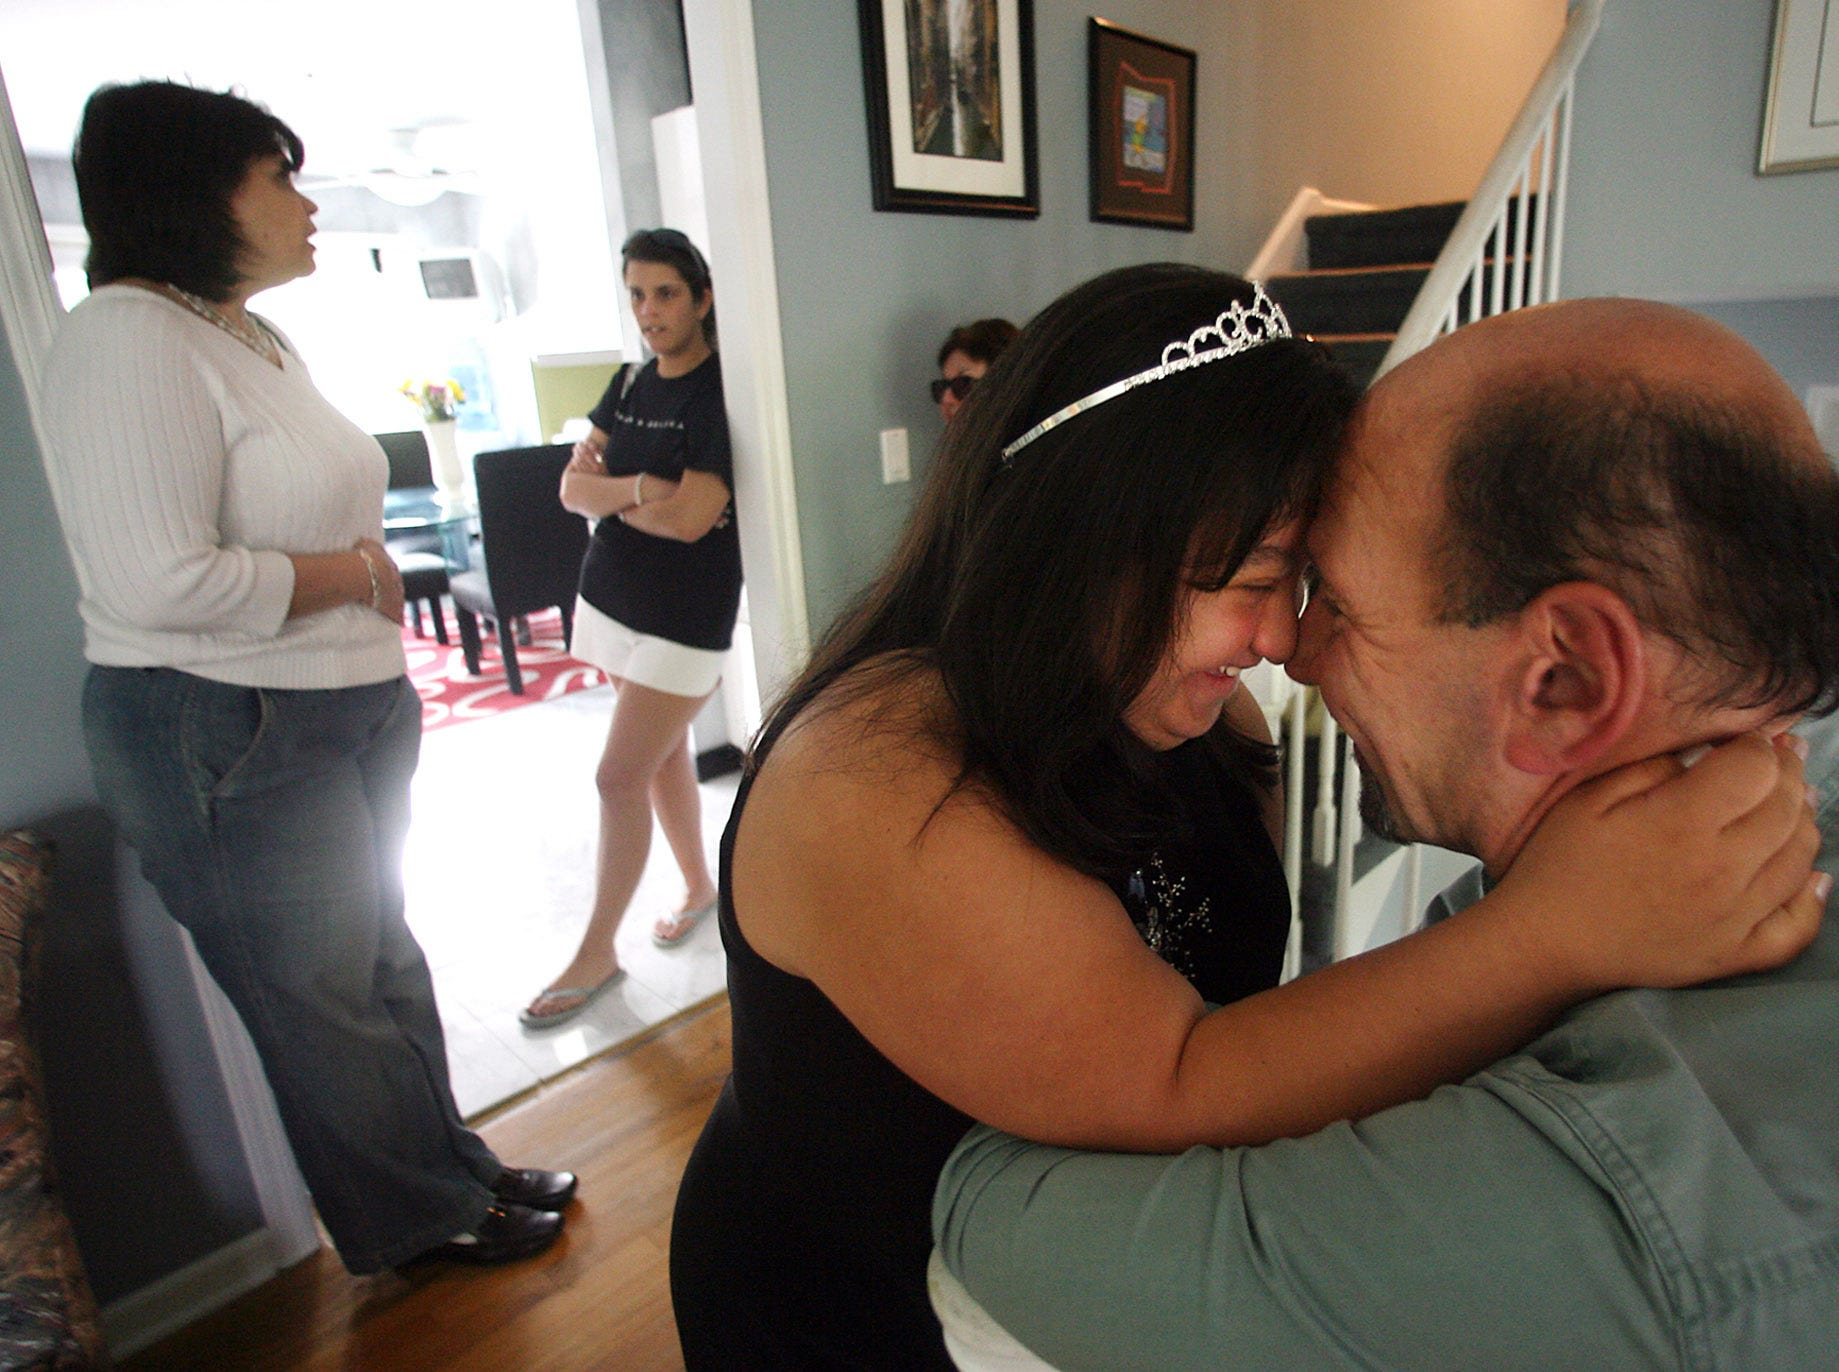 Alicia Vitiello shares a moment with her dad, Tom, telling him she loves him while she waits for the arrival of her date for the  junior prom. May 12, 2006, East Hanover, NJ